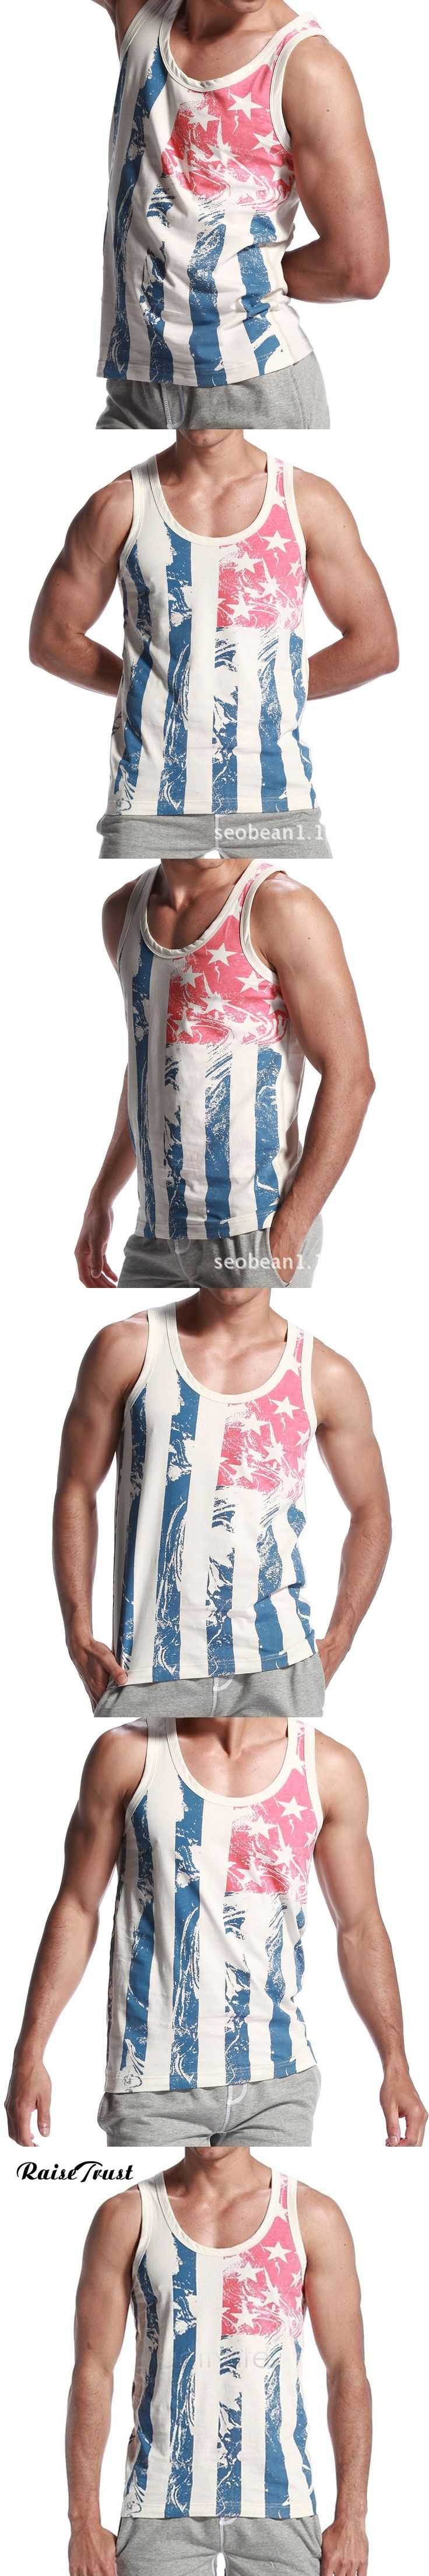 New spring 2016 vest bodybuilding clothing and fitness men tank tops golds brand vest 100% cotton undershirt musculation